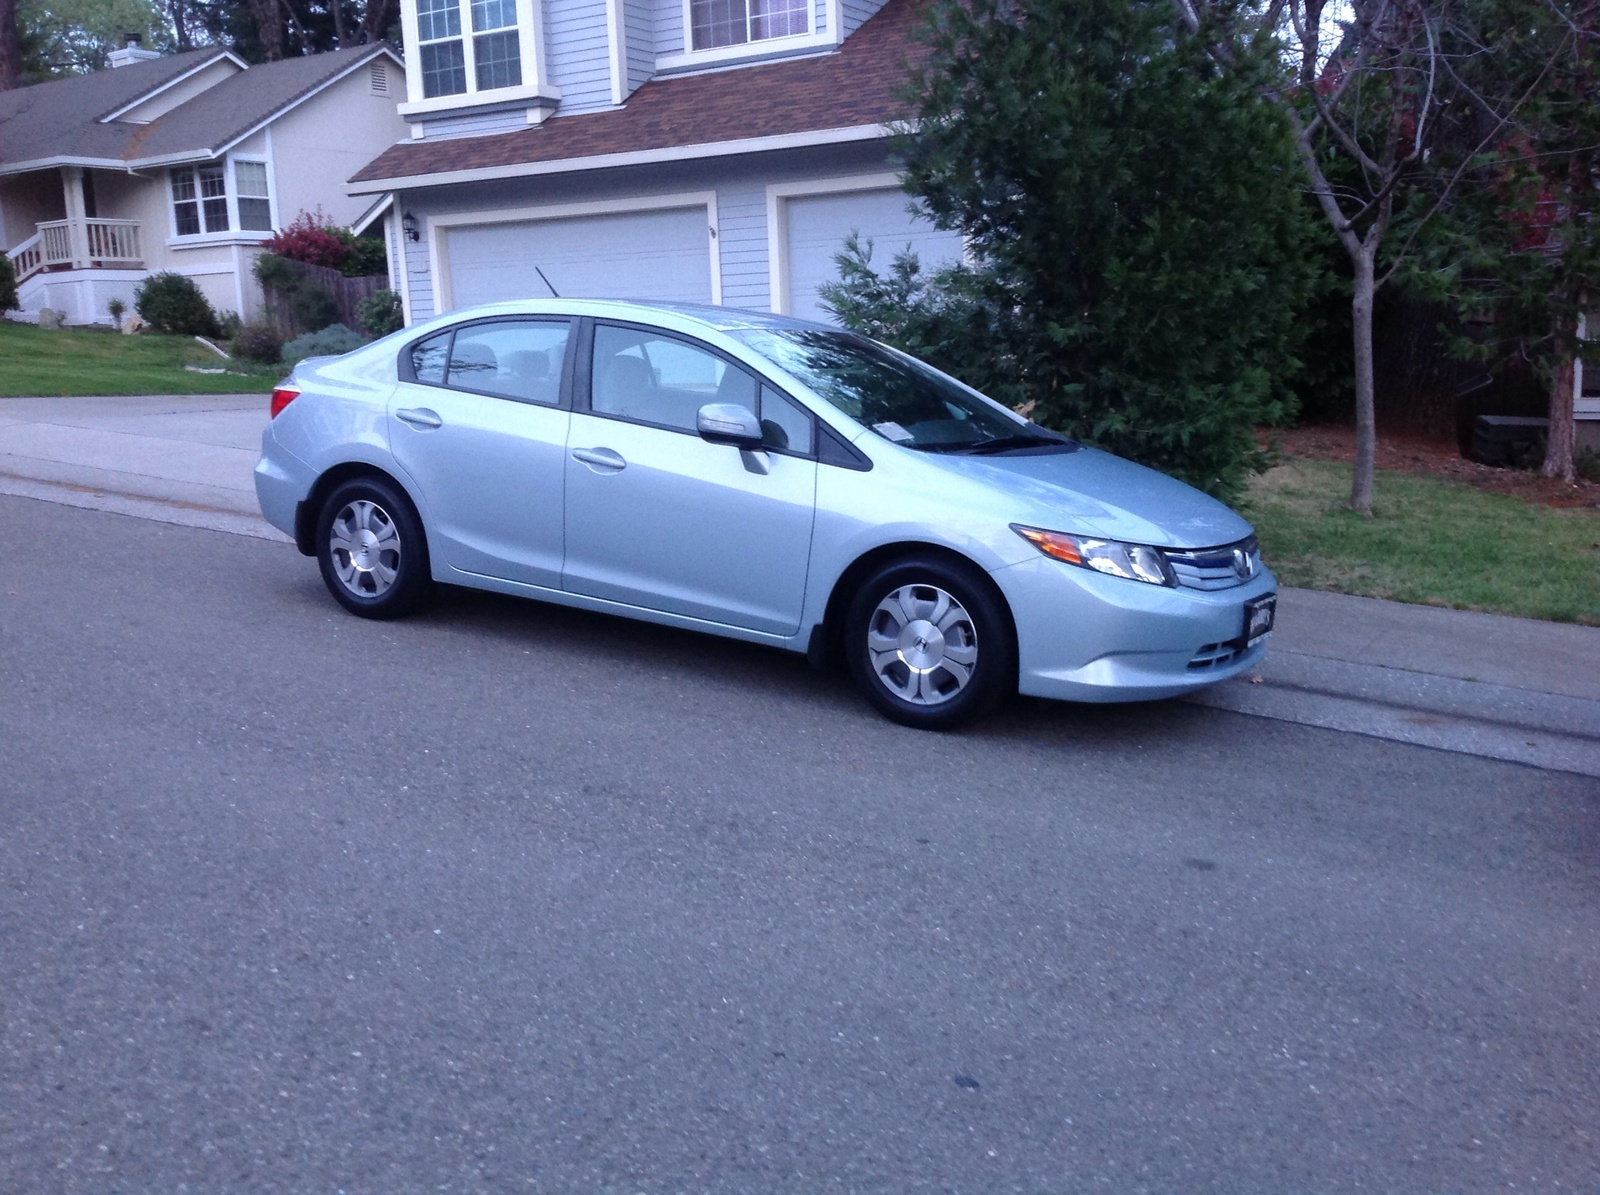 honda civic questions my car for sale is not showing up in the listings cargurus. Black Bedroom Furniture Sets. Home Design Ideas